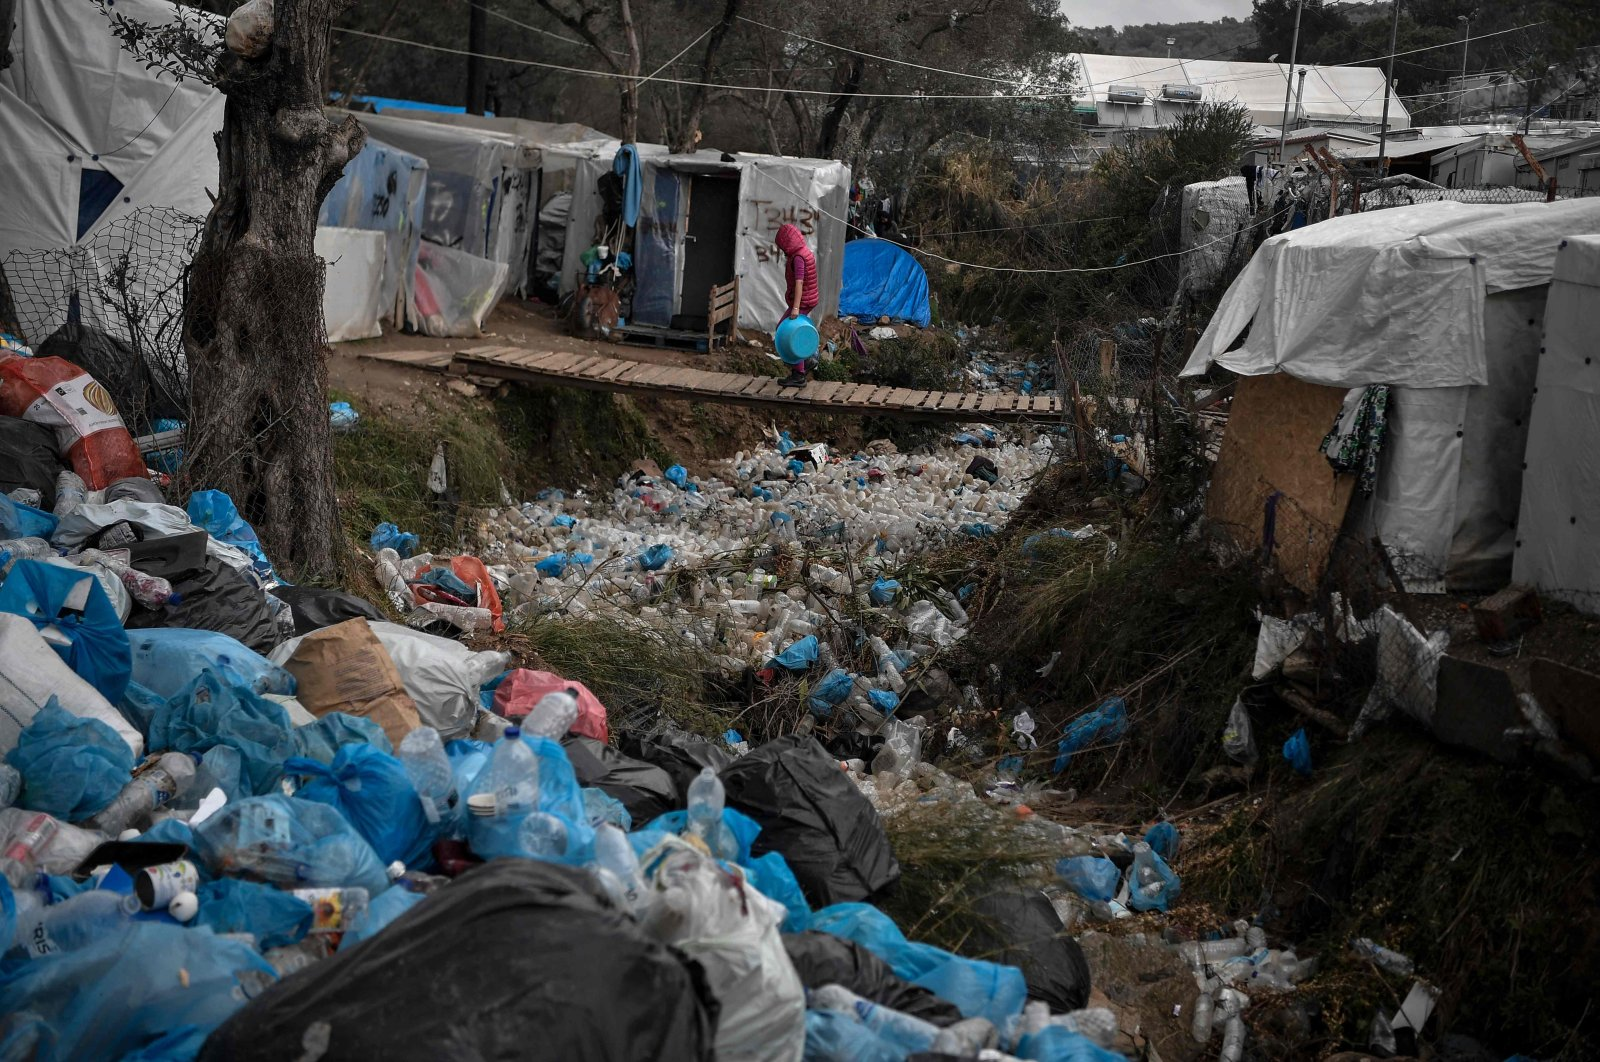 A child walks on a bridge over a trash-filled ditch in the overcrowded Moria migrant camp on the Greek Aegean island of Lesbos, March 5, 2020. (AFP Photo)